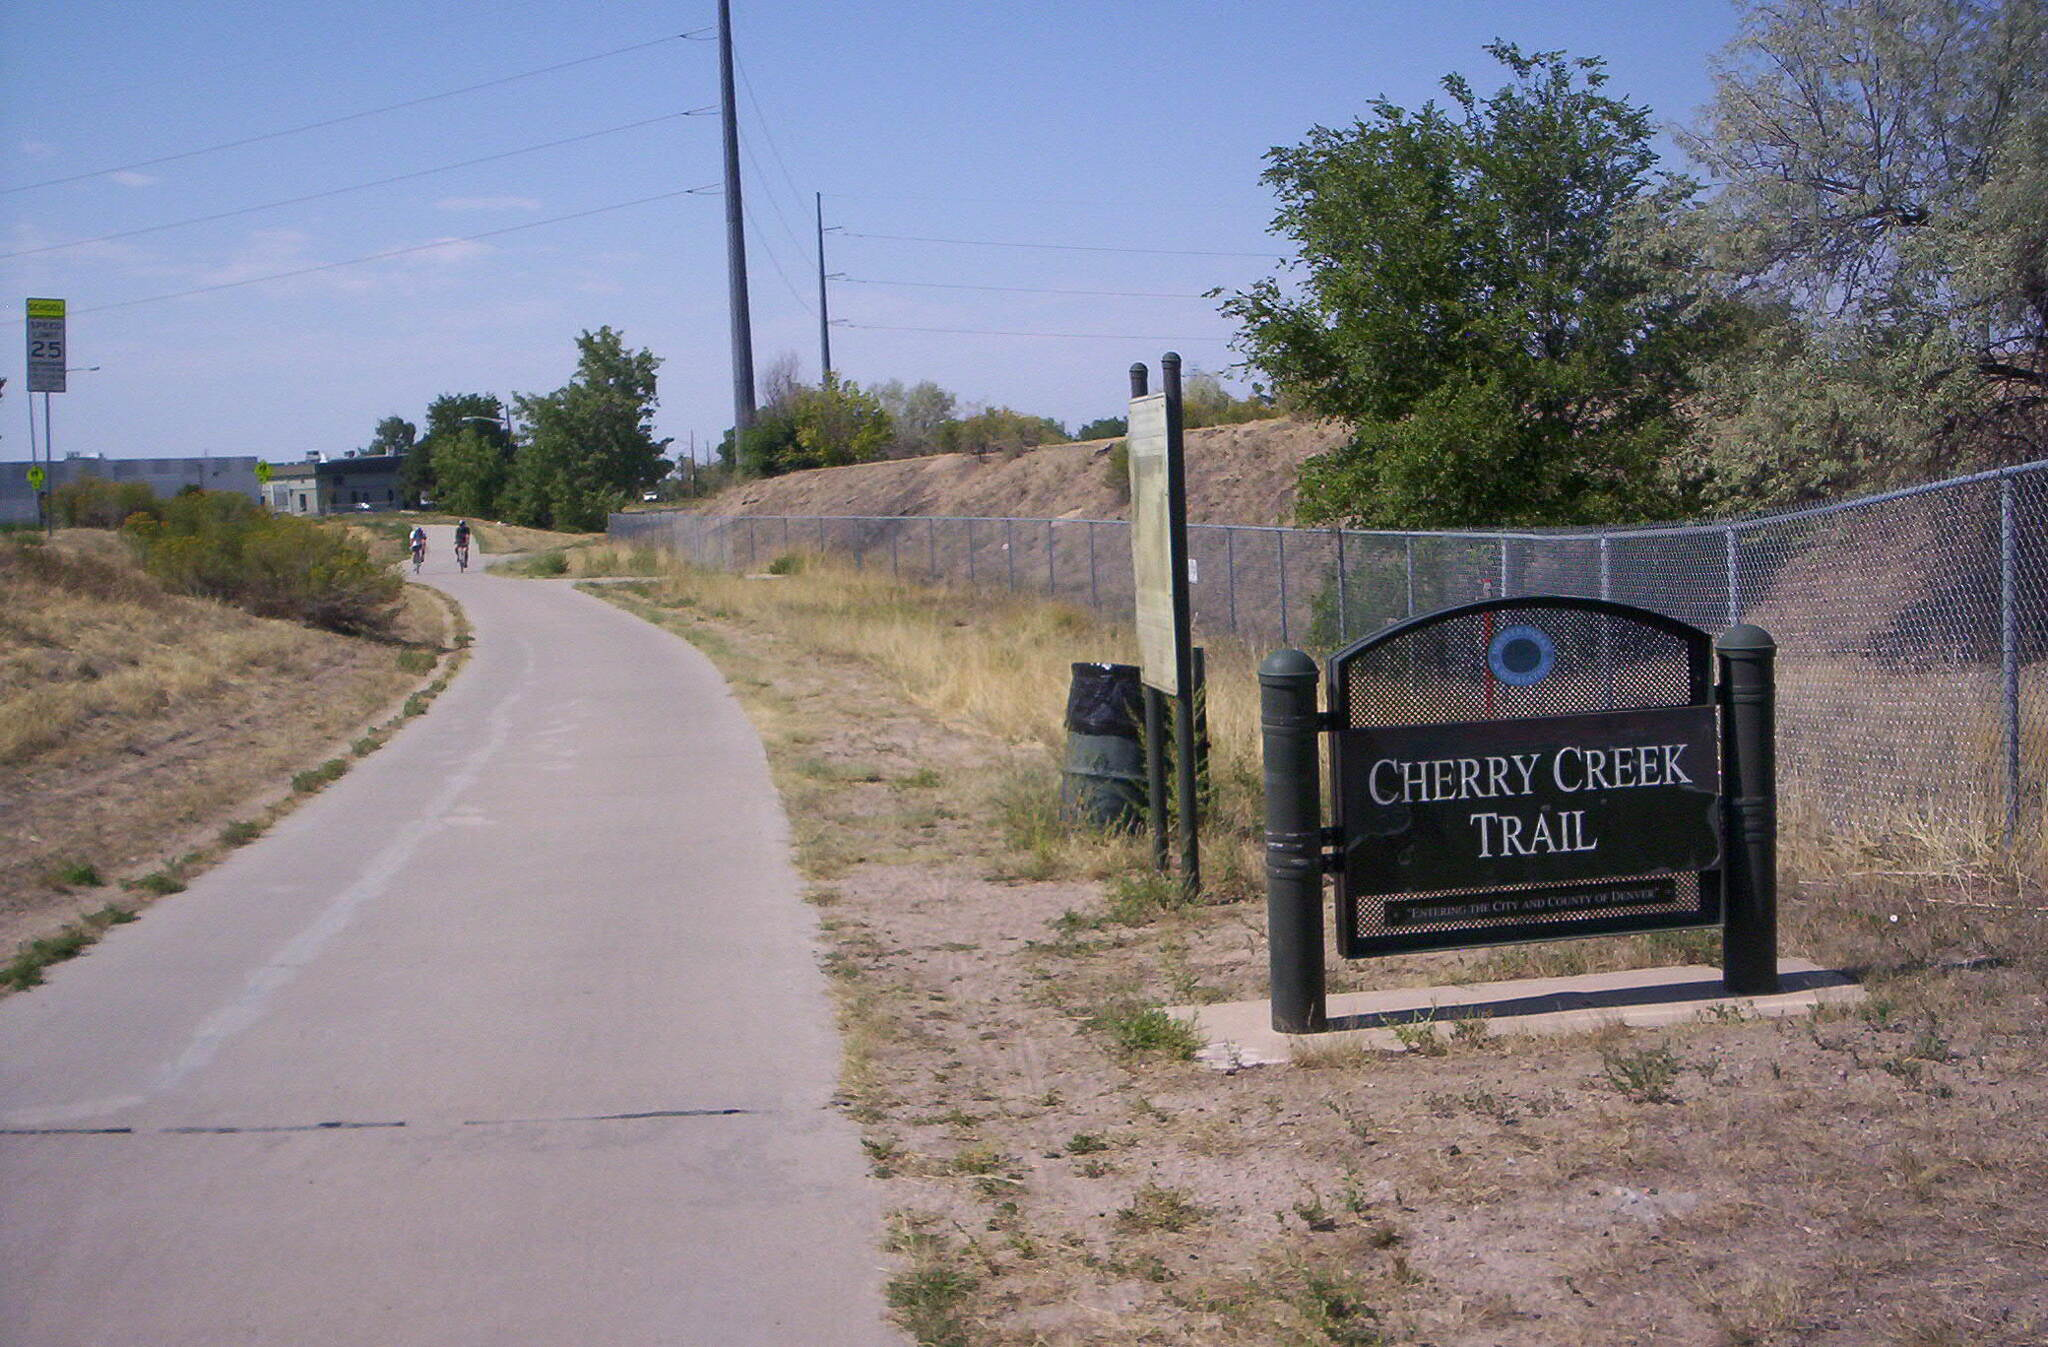 Cherry Creek Regional Trail Sign Sign along the trail, with map.